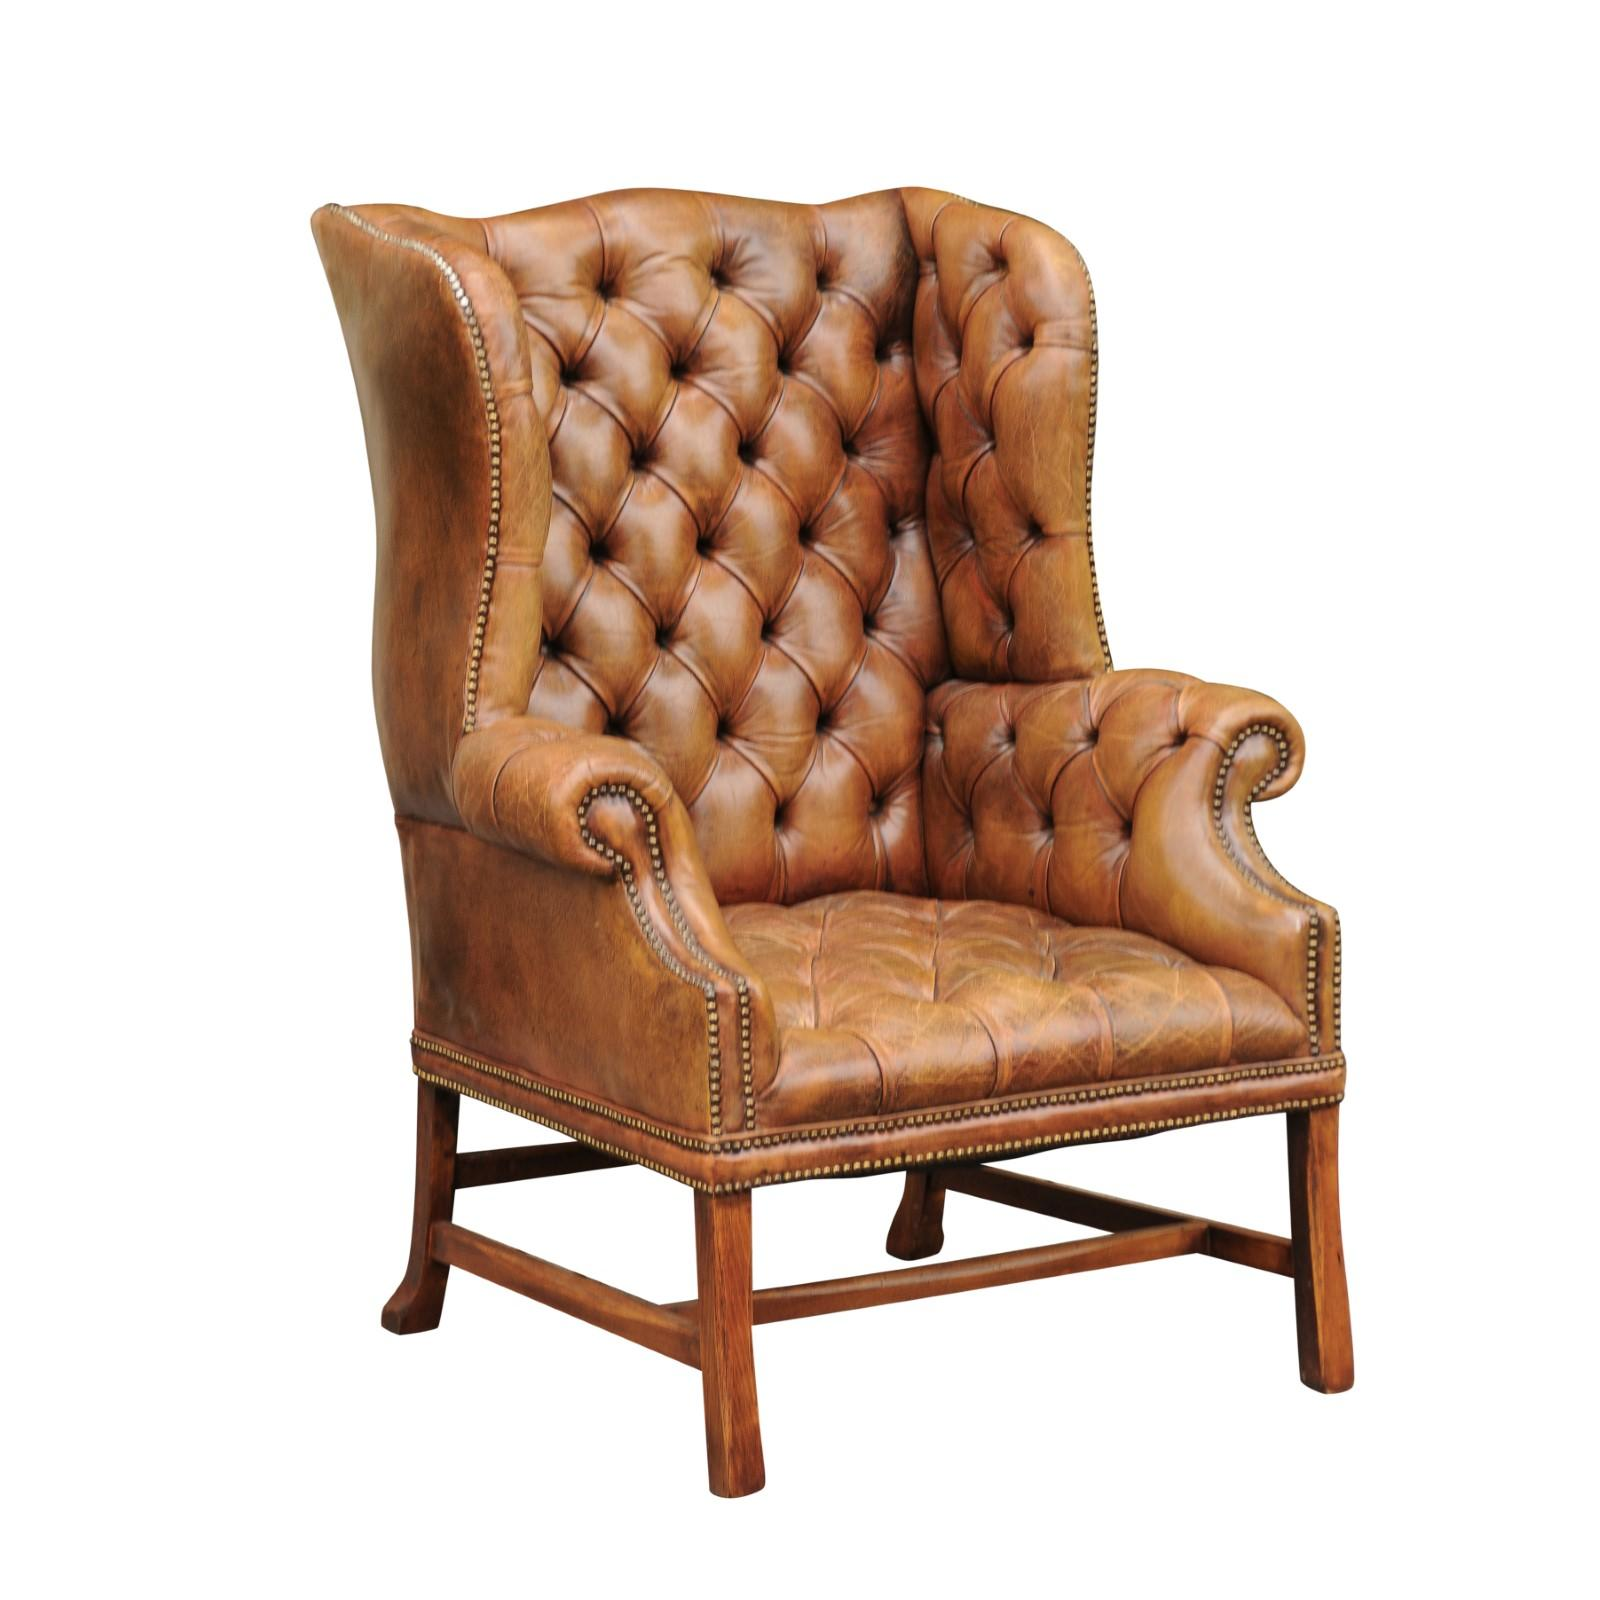 Antiques Vintage Leather Wing Arm Chair Reputation First